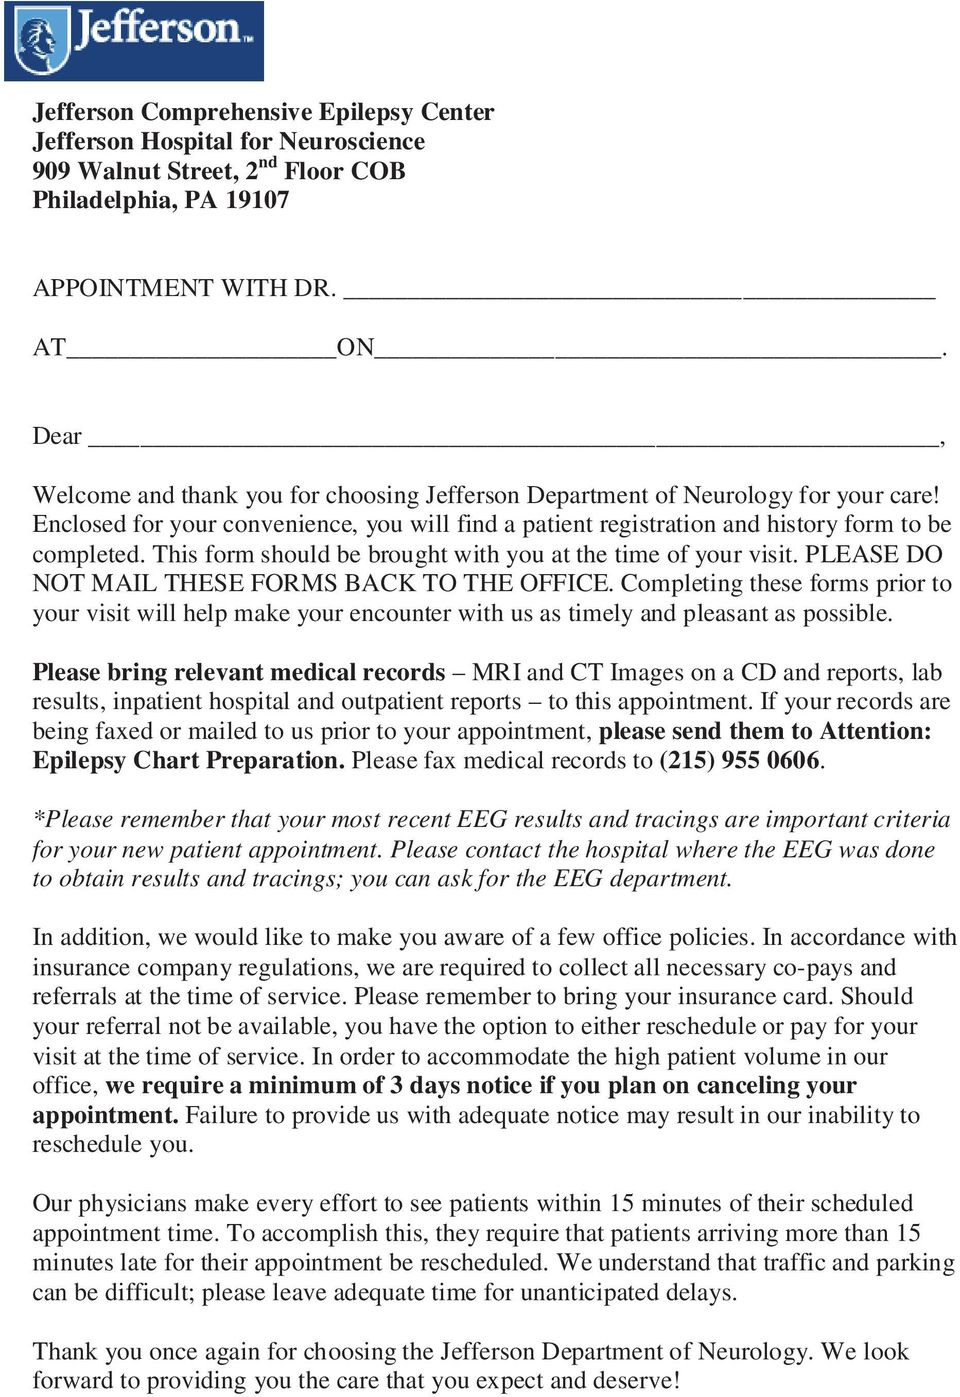 This form should be brought with you at the time of your visit. PLEASE DO NOT MAIL THESE FORMS BACK TO THE OFFICE.